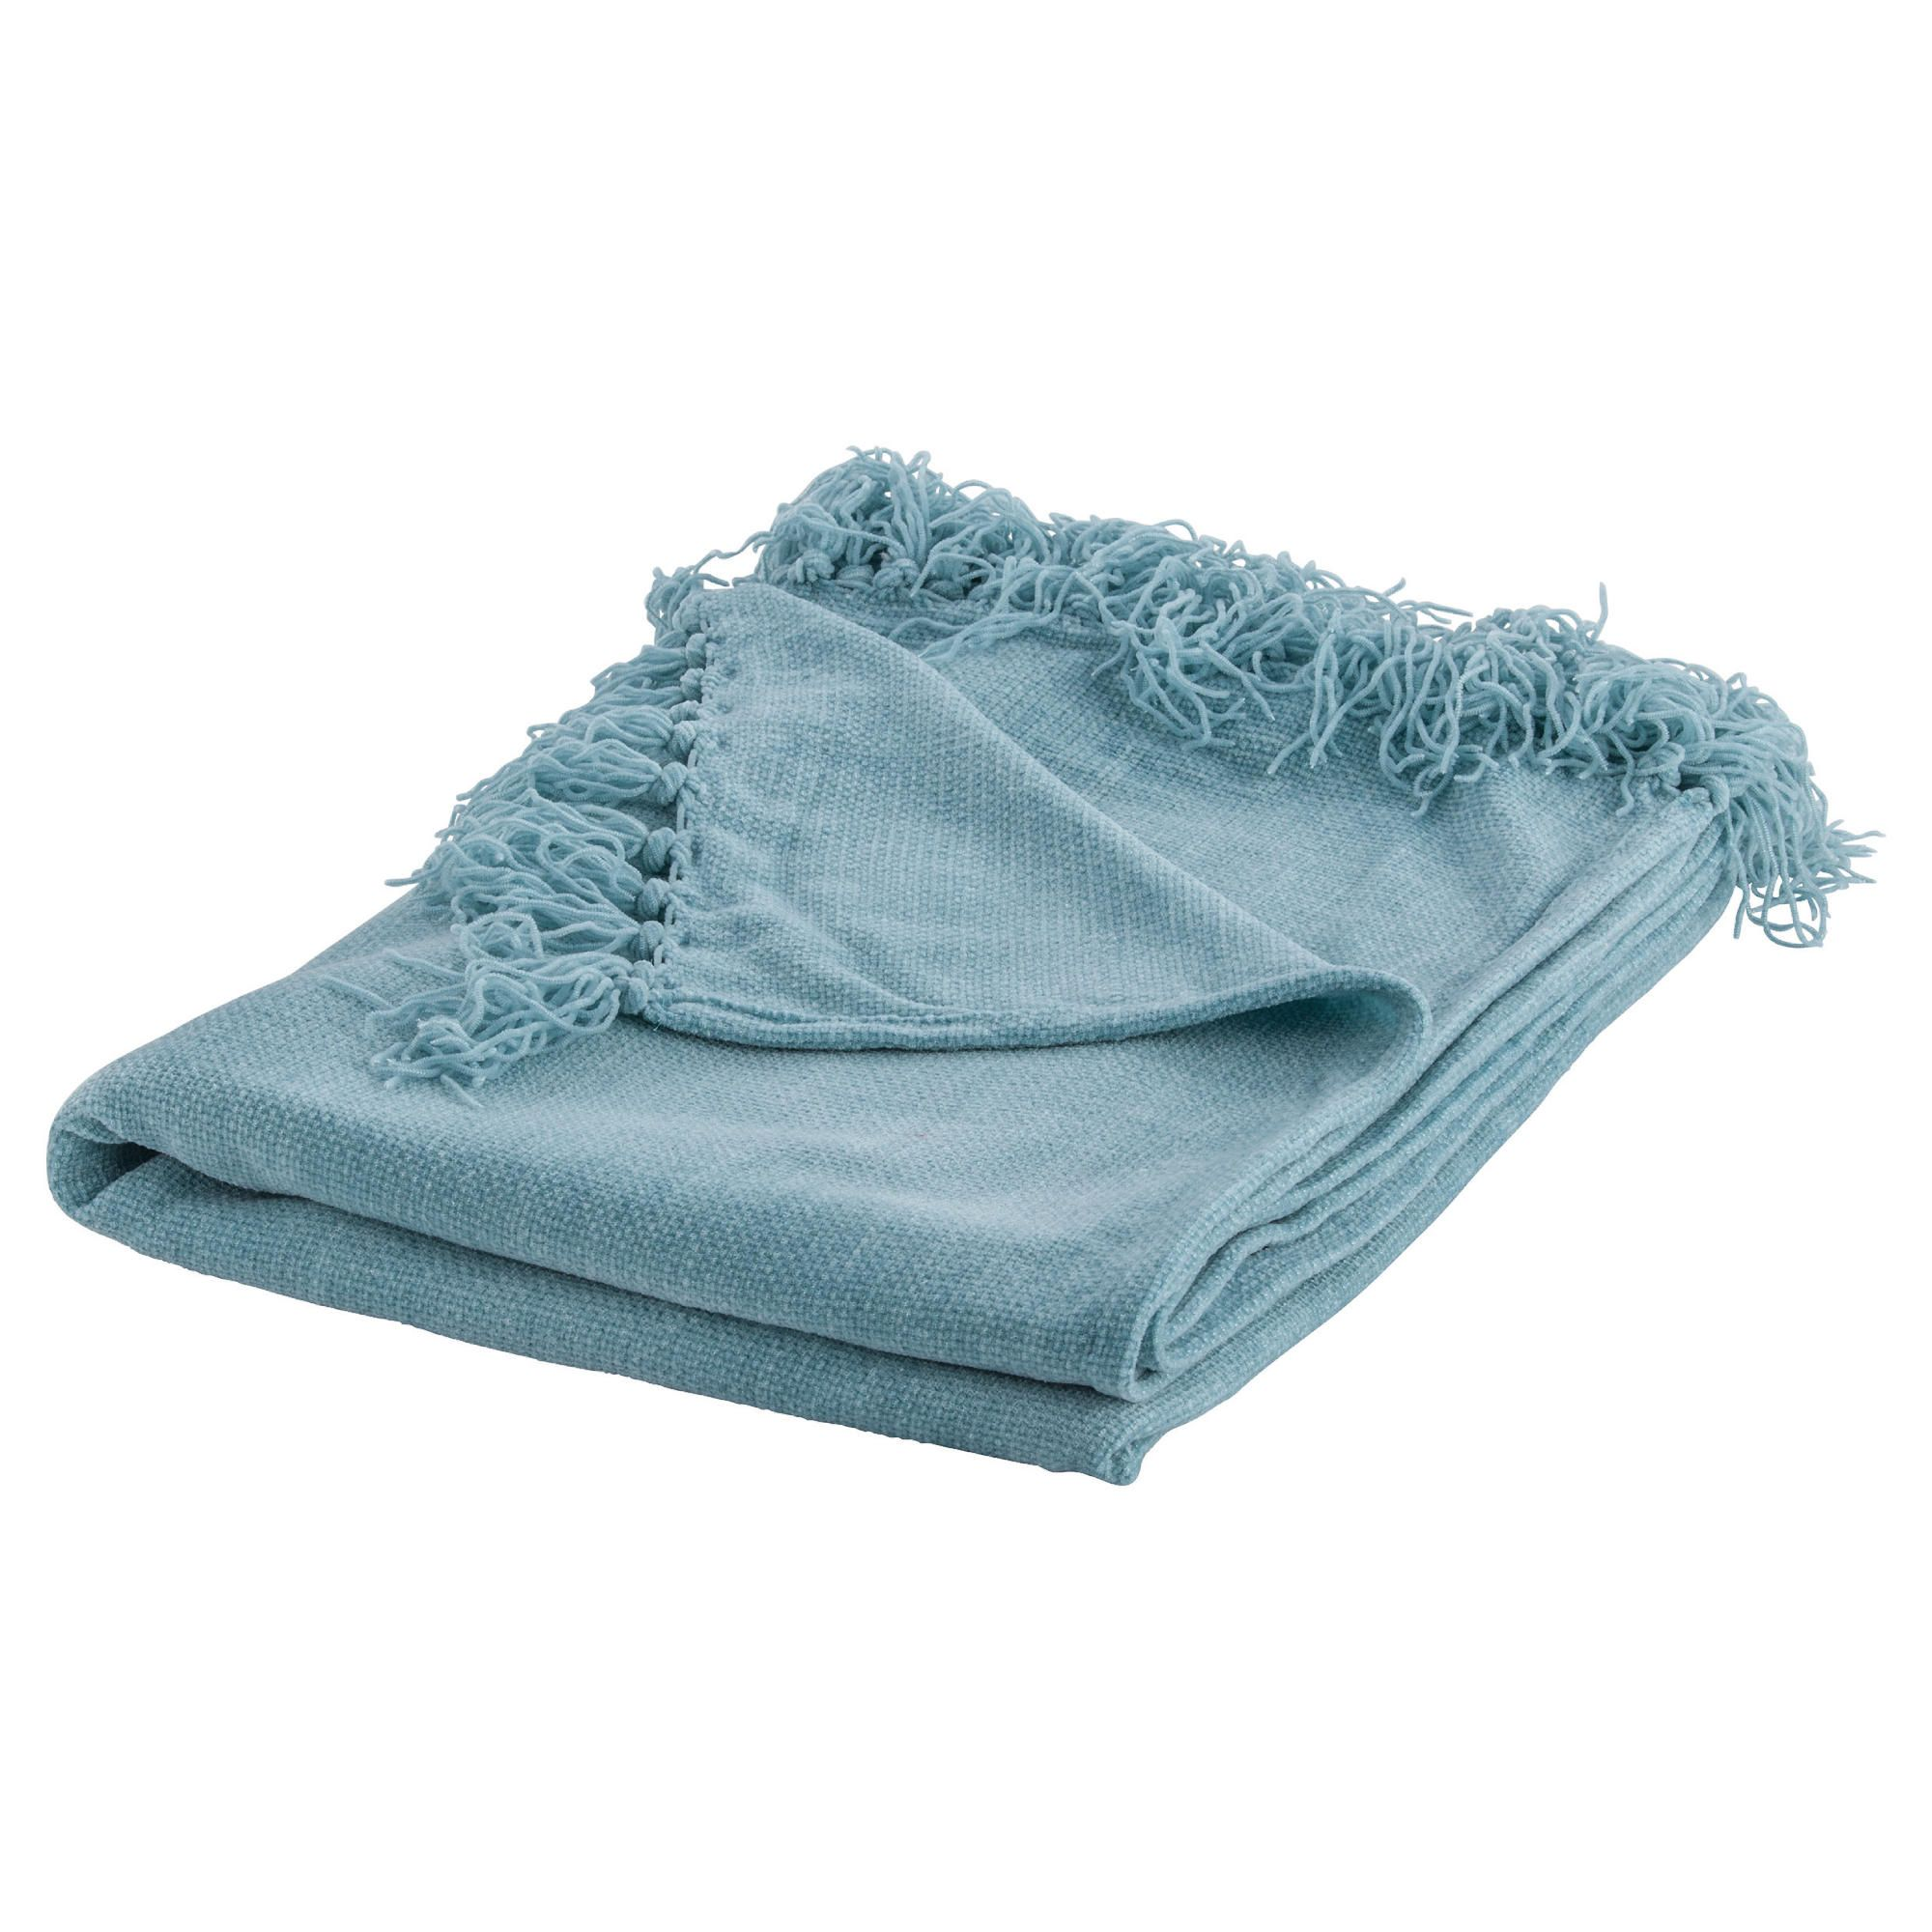 Blue Throws For Sofas Blue Throws For Sofas Home Design Ideas And Pictures Thesofa